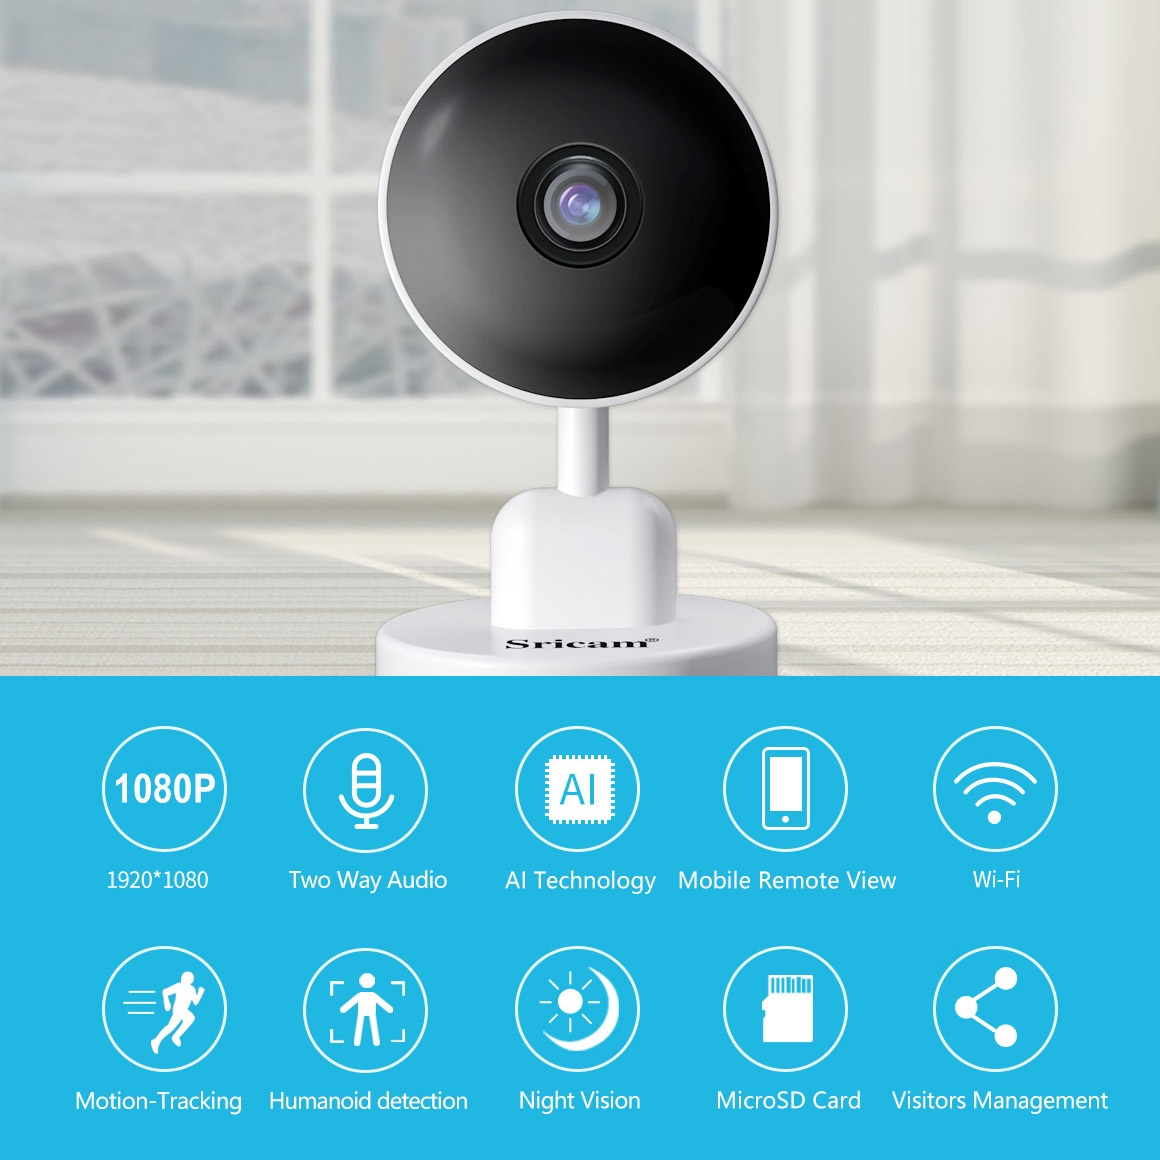 Sricam SP027 1080P AI Smart WiFi Camera, Support Two Way Audio / Motion Tracking / Humanoid Detection / Night Vision / TF Card